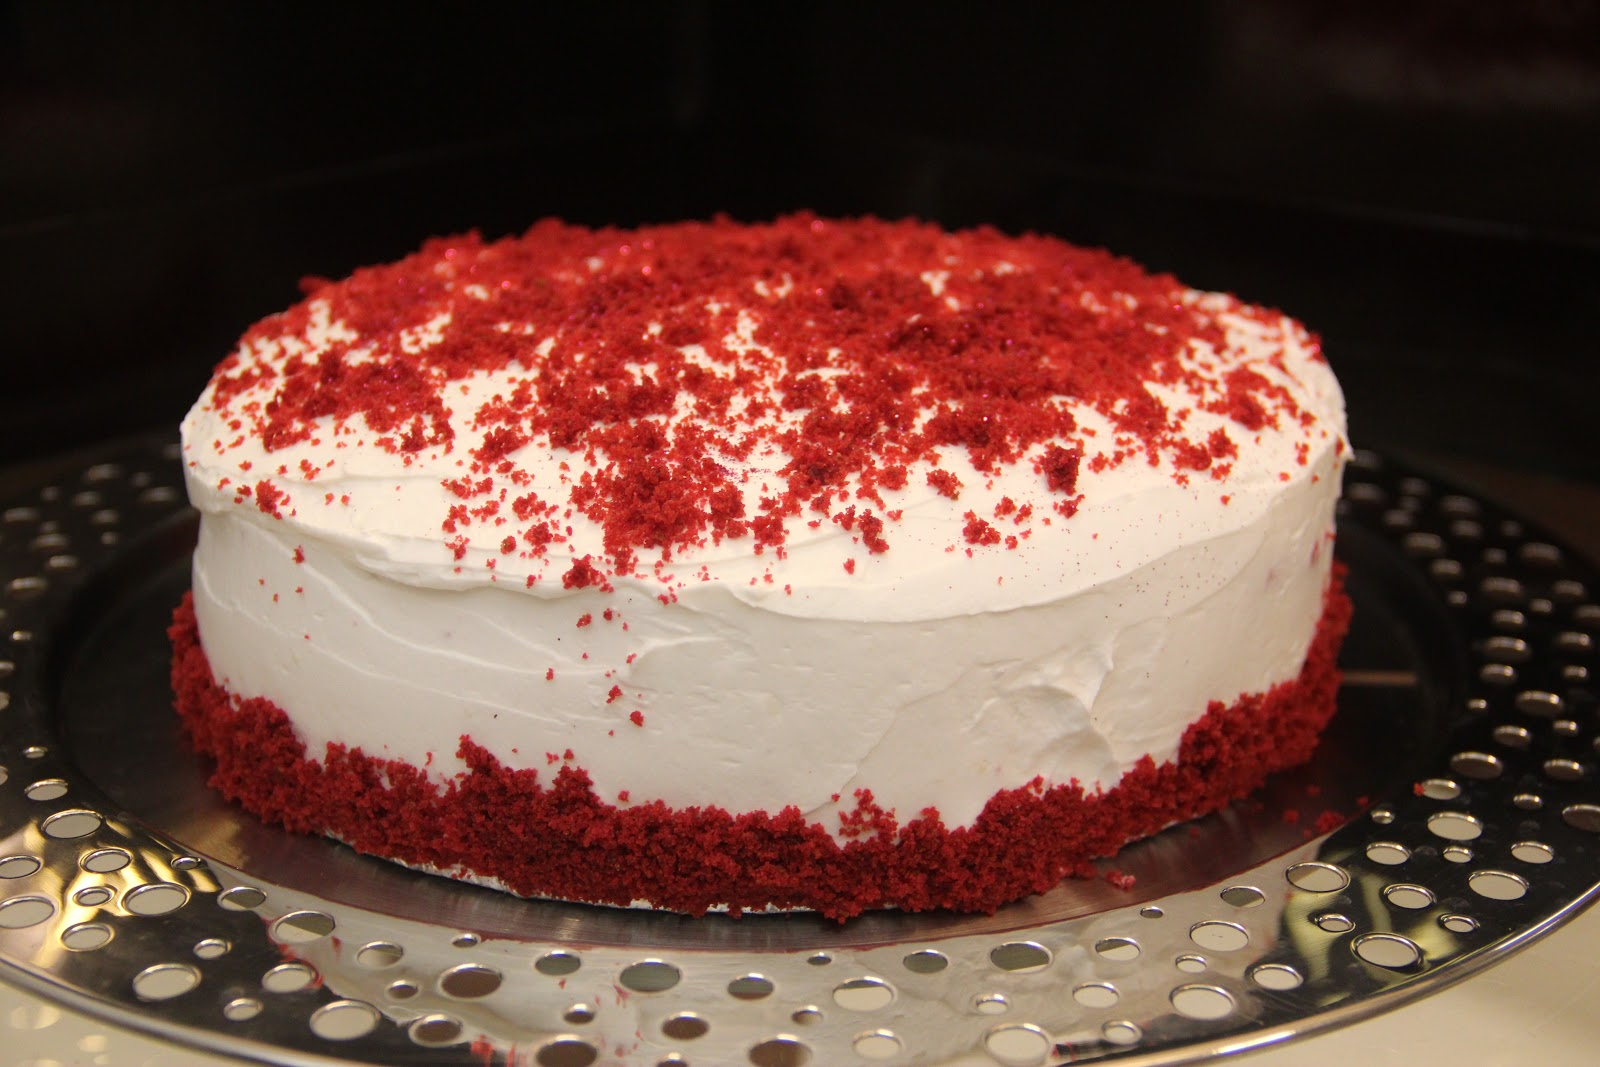 25 Mouthwatering Red Velvet Cake Pictures